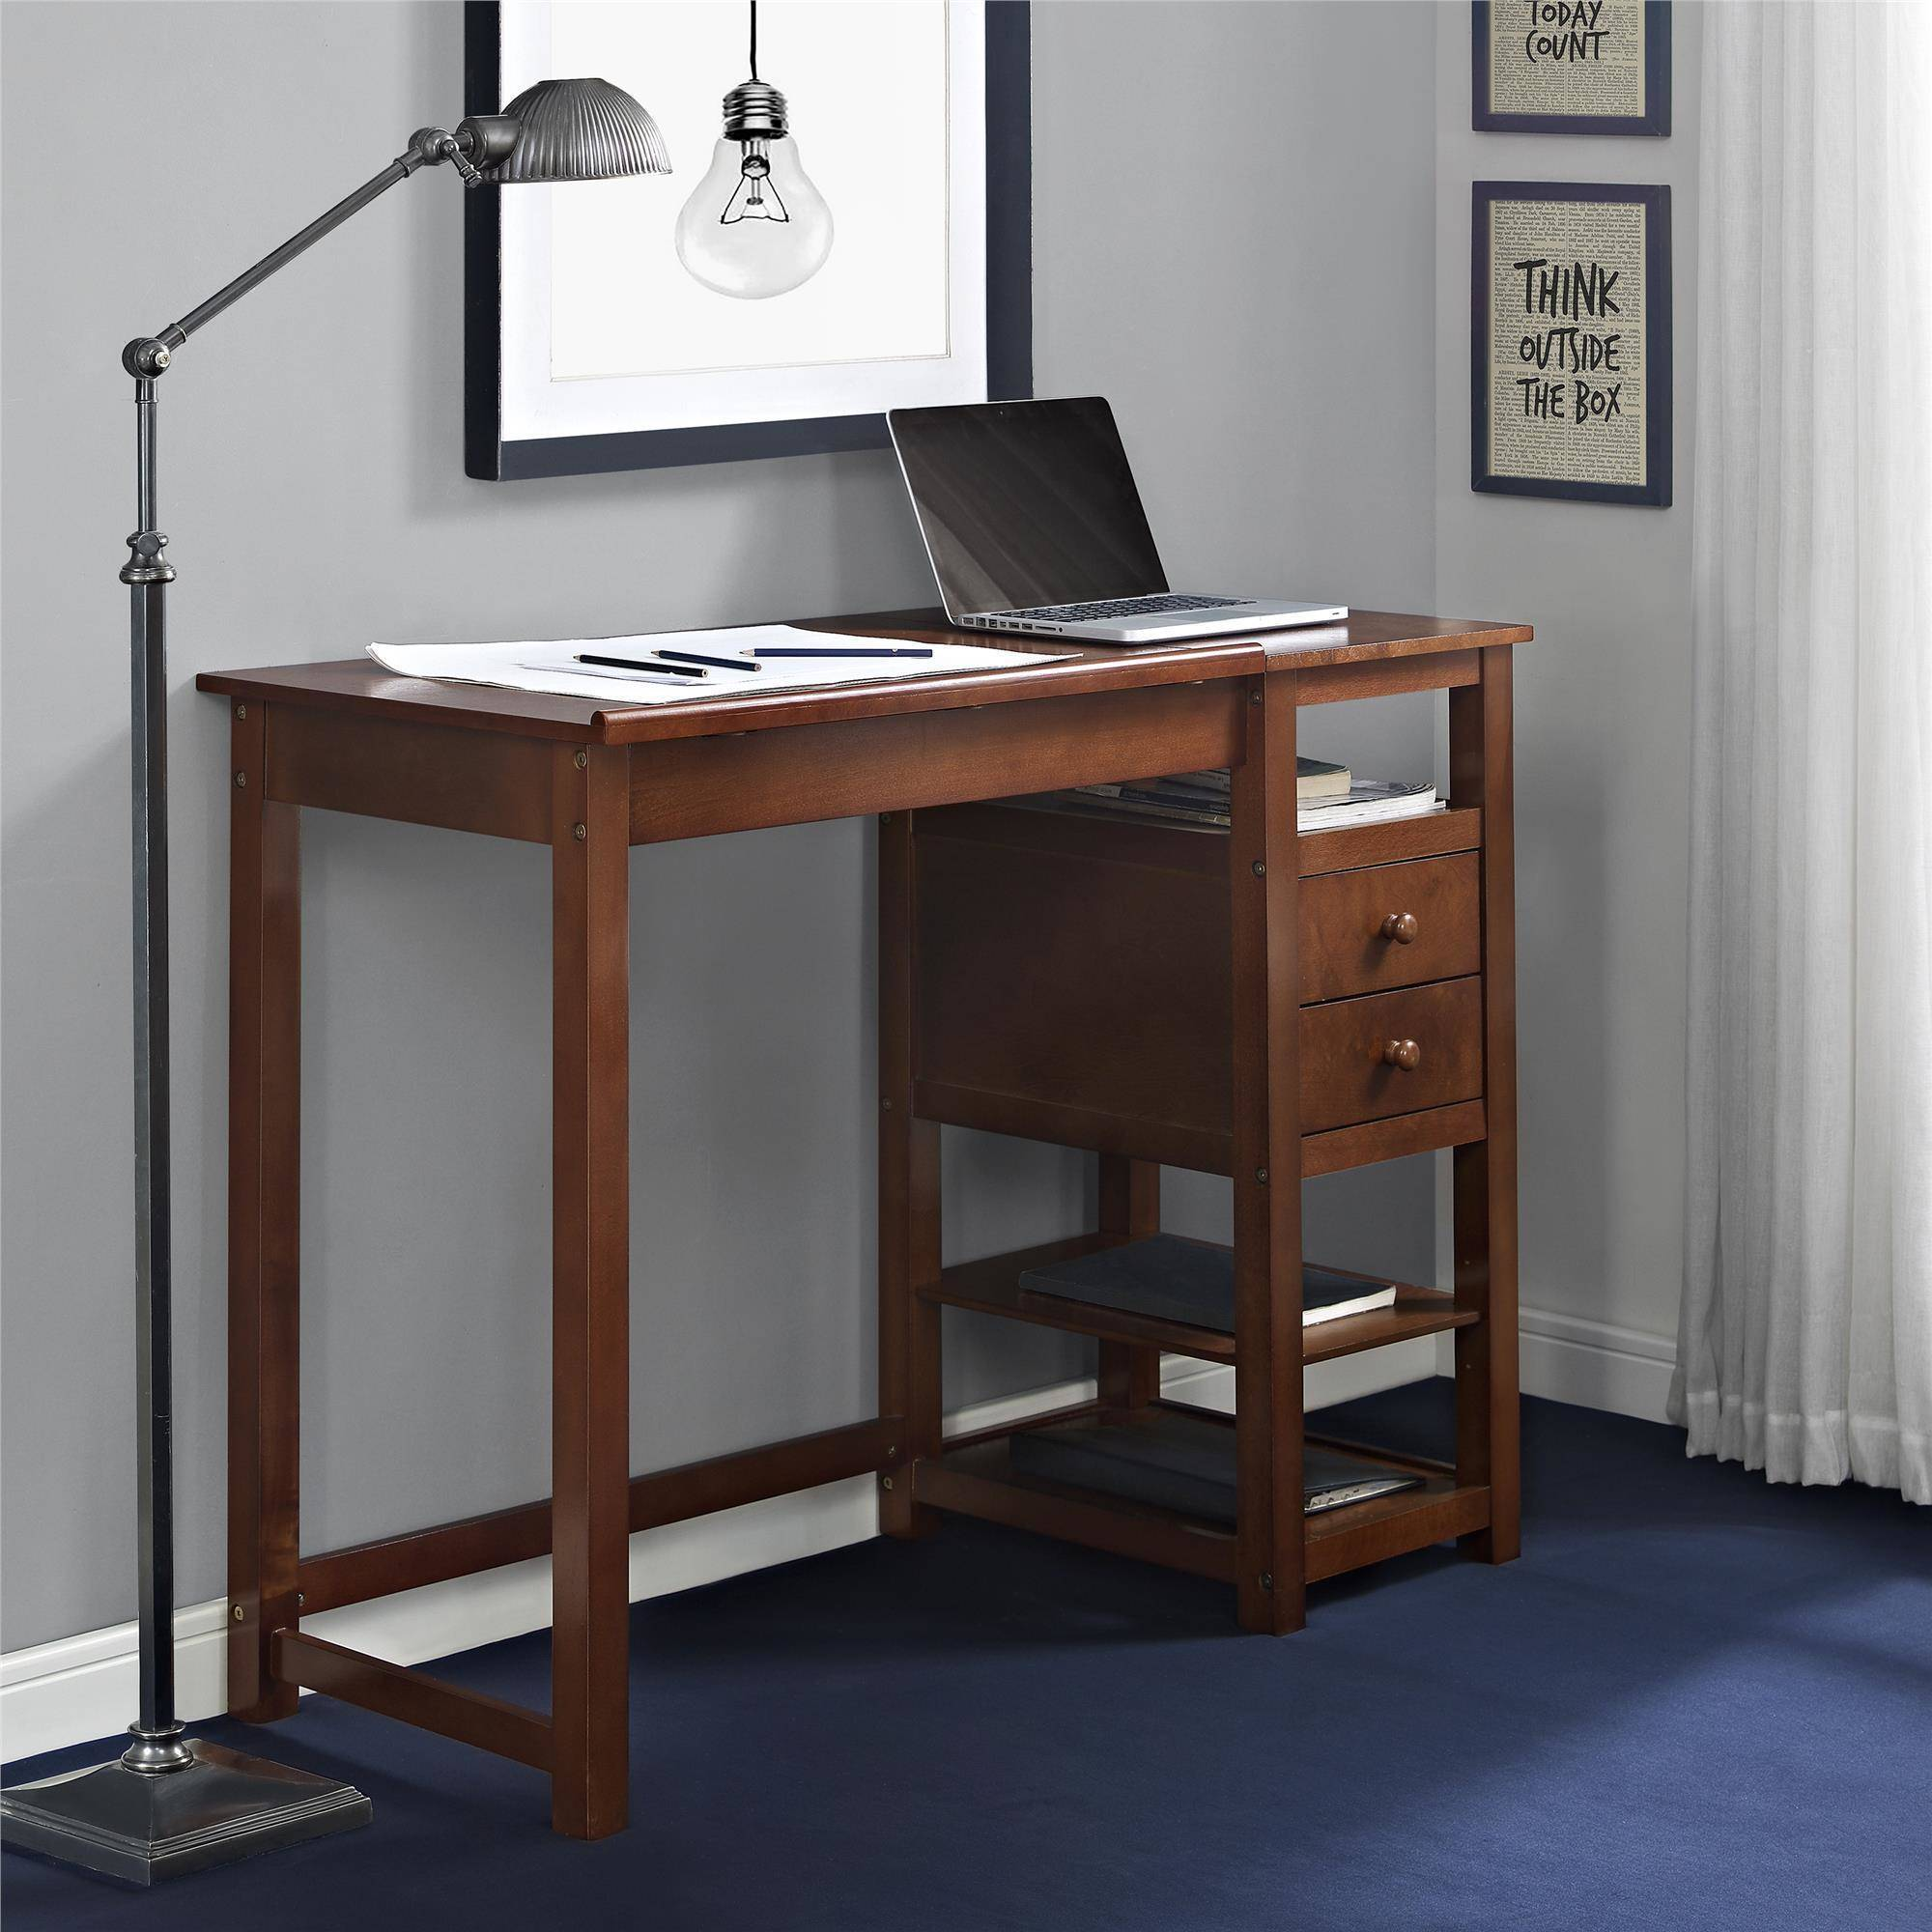 Charmant Dorel Home Drafting And Craft Desk, Espresso   Walmart.com